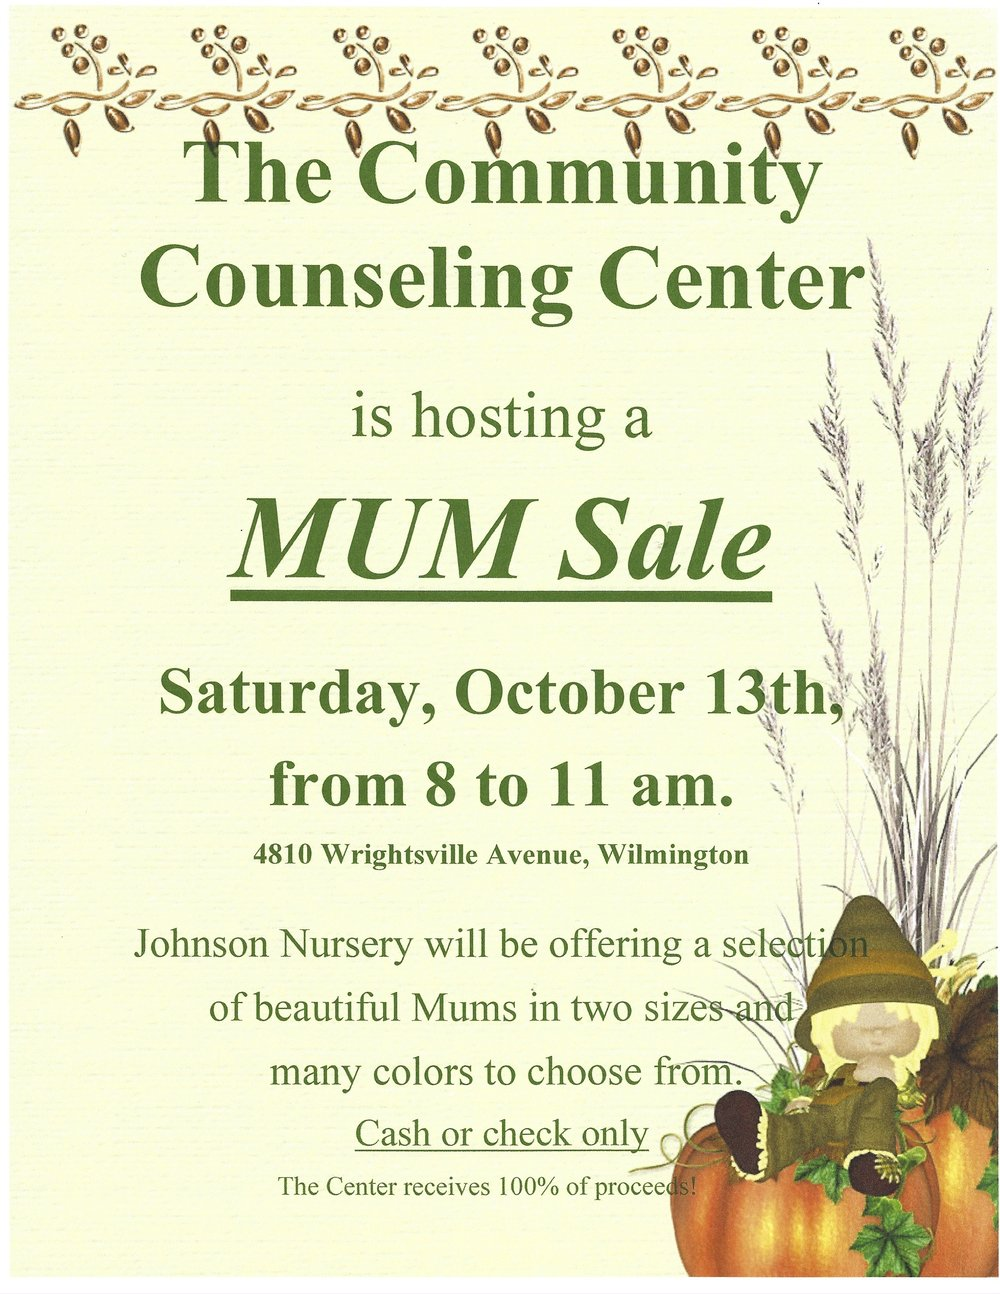 Mum sale flyer 2018.jpg